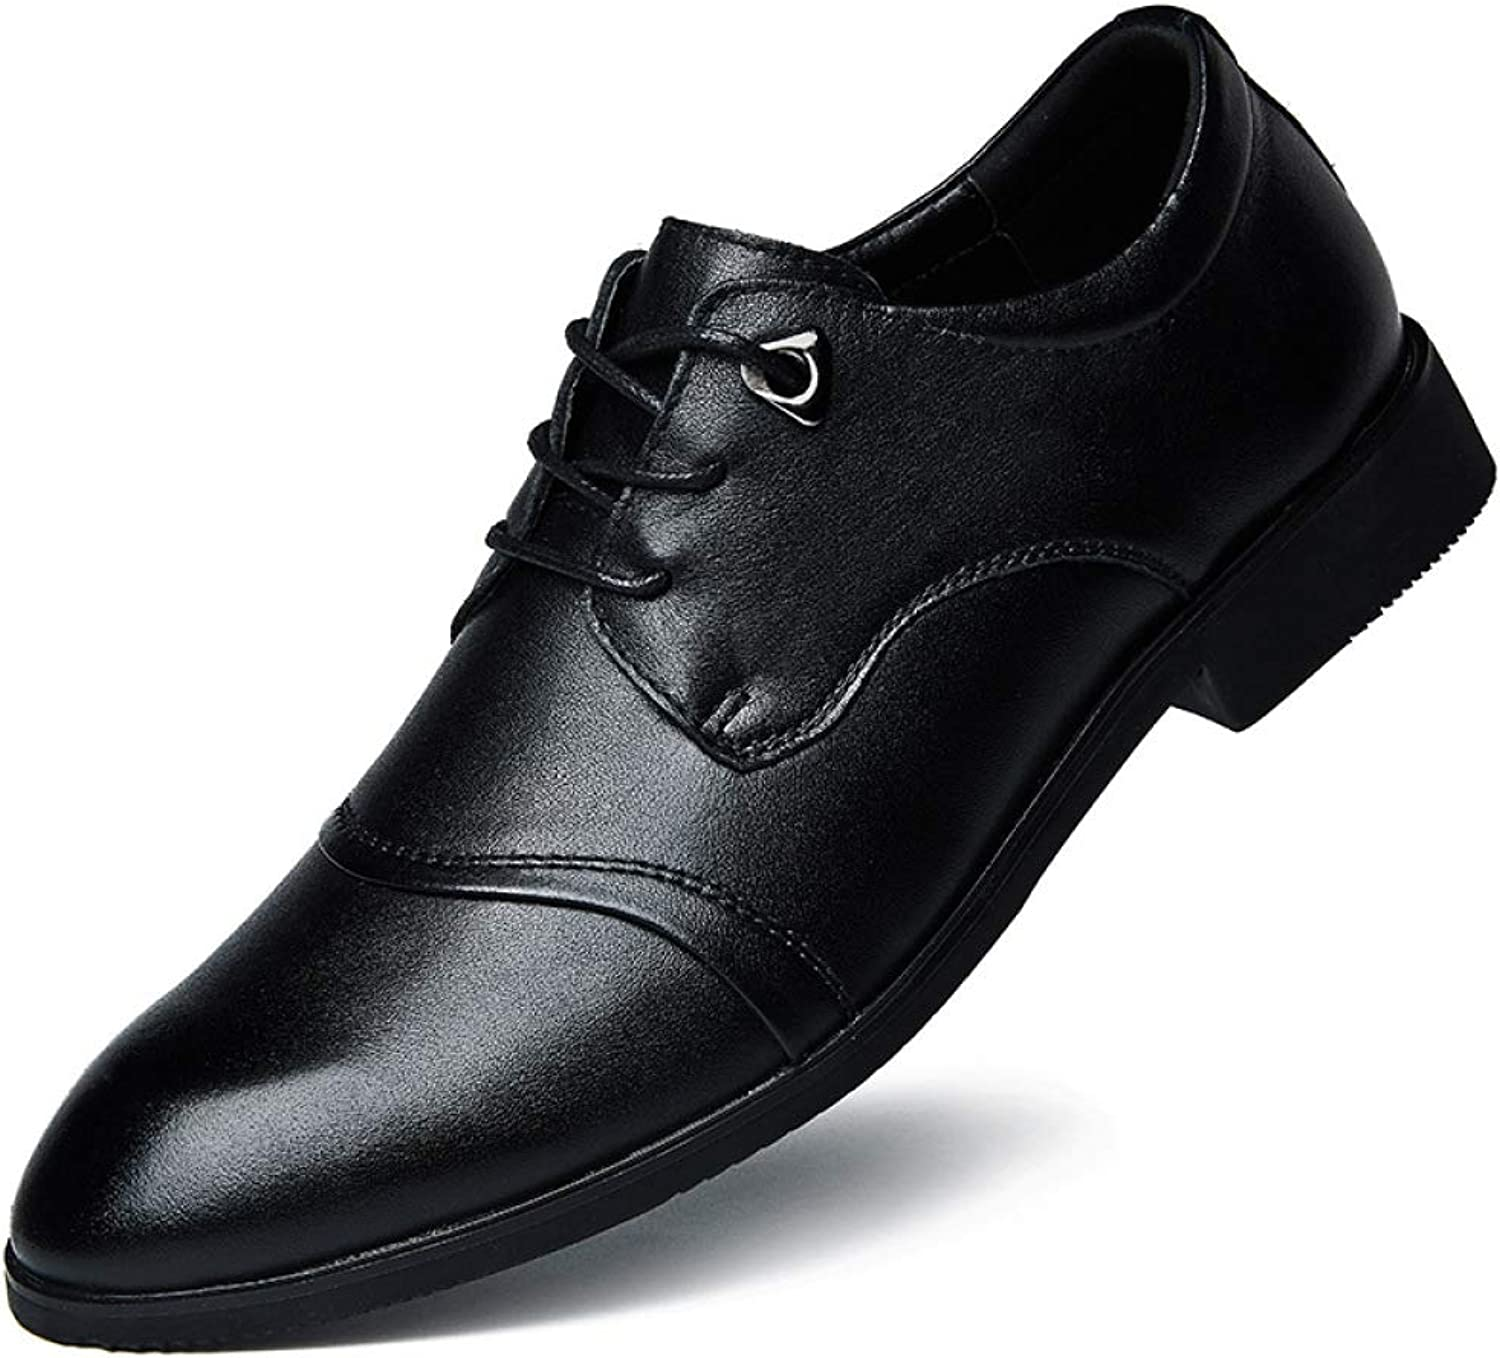 GLSHI Men's Pointed Derby shoes Fashion England Business Casual shoes Comfortable Wedding shoes Large Size